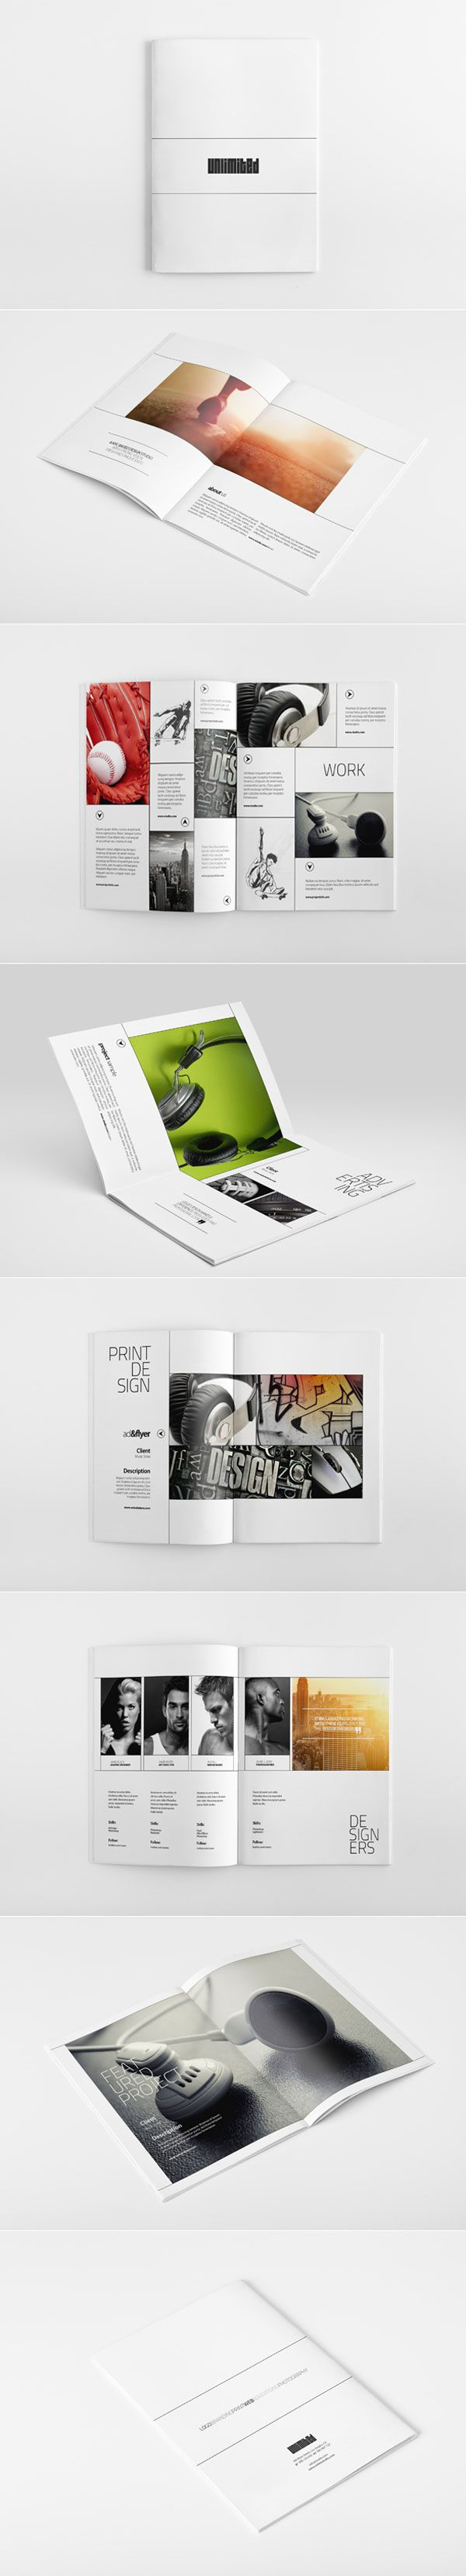 Portfolio brochure design ideas 20+ Simple Yet Beautiful Brochure Design Inspiration & Templates